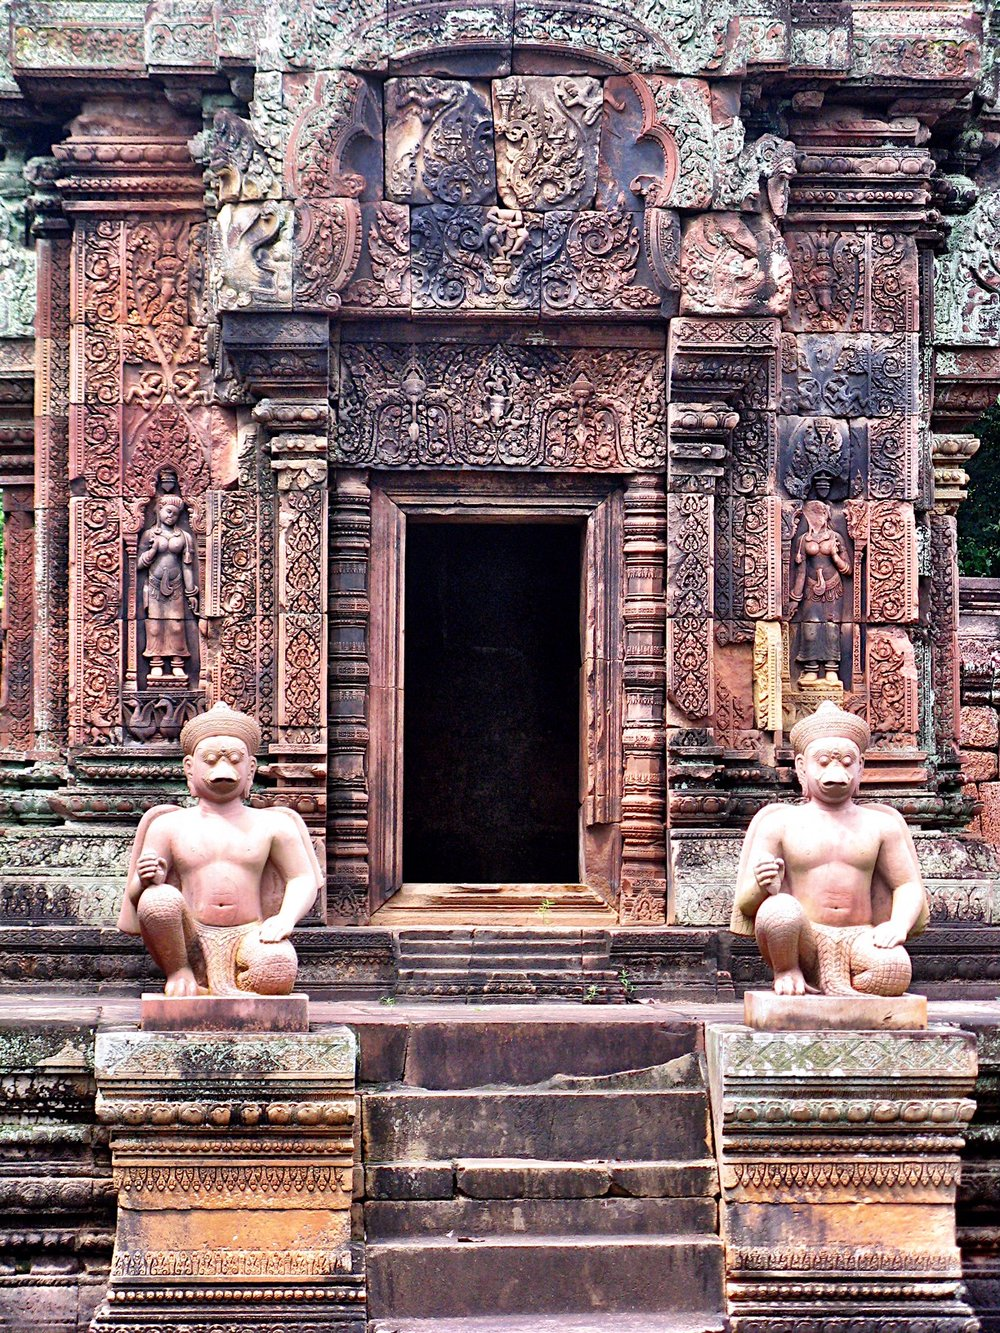 The temple was built to honor the Hindu god of destruction, Shiva